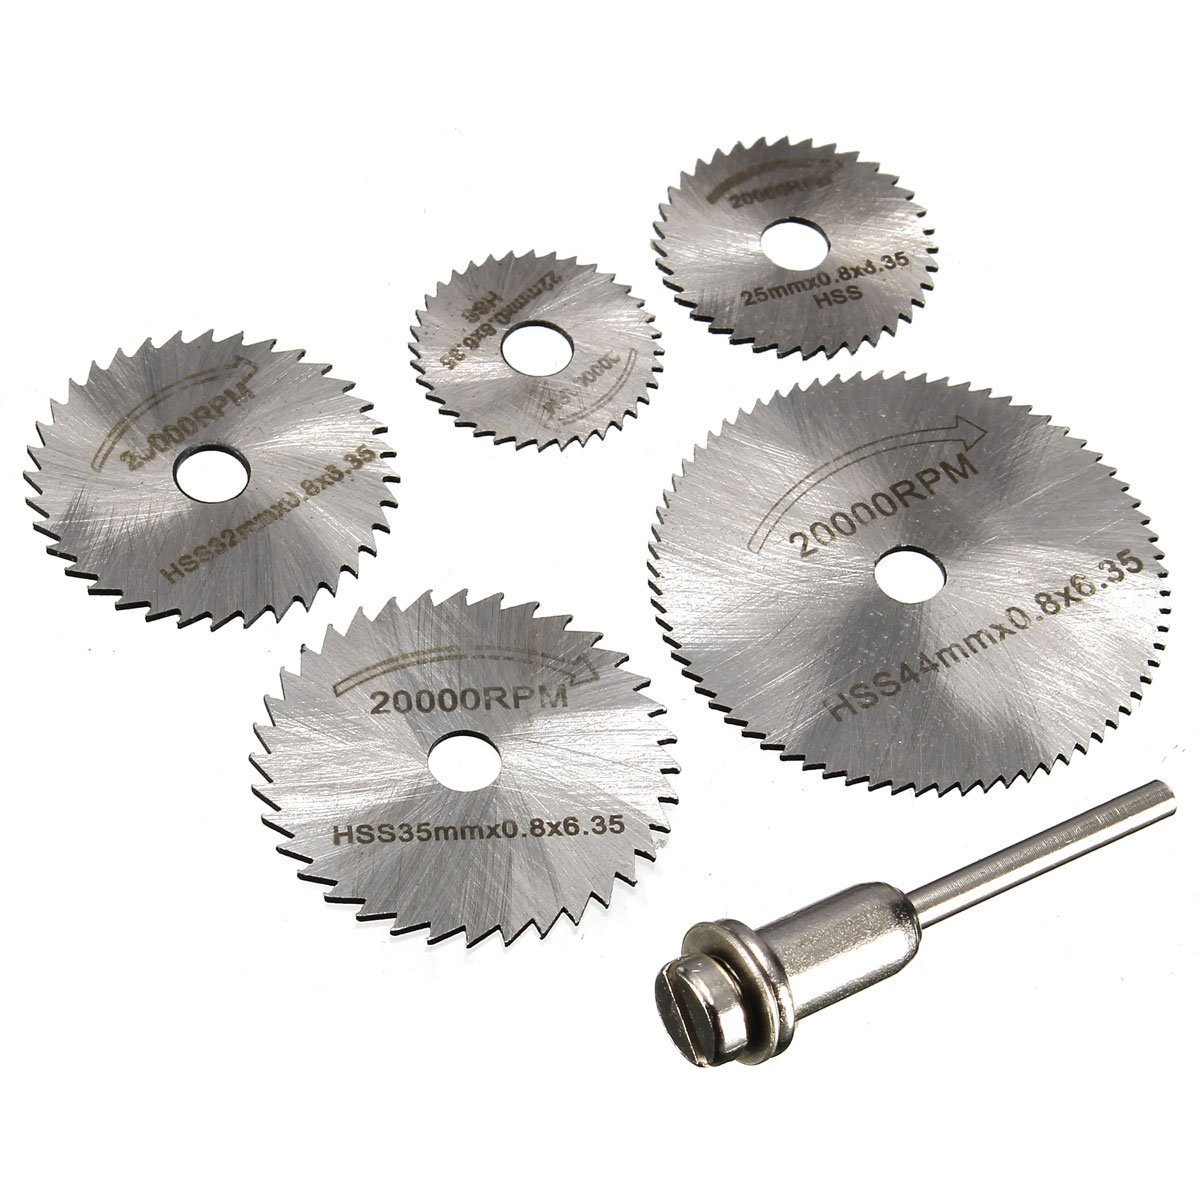 6pc Mini Diamond Cutting Disc Set 3.17mm Shank Mandrels Dremel Rotary Drill Tool